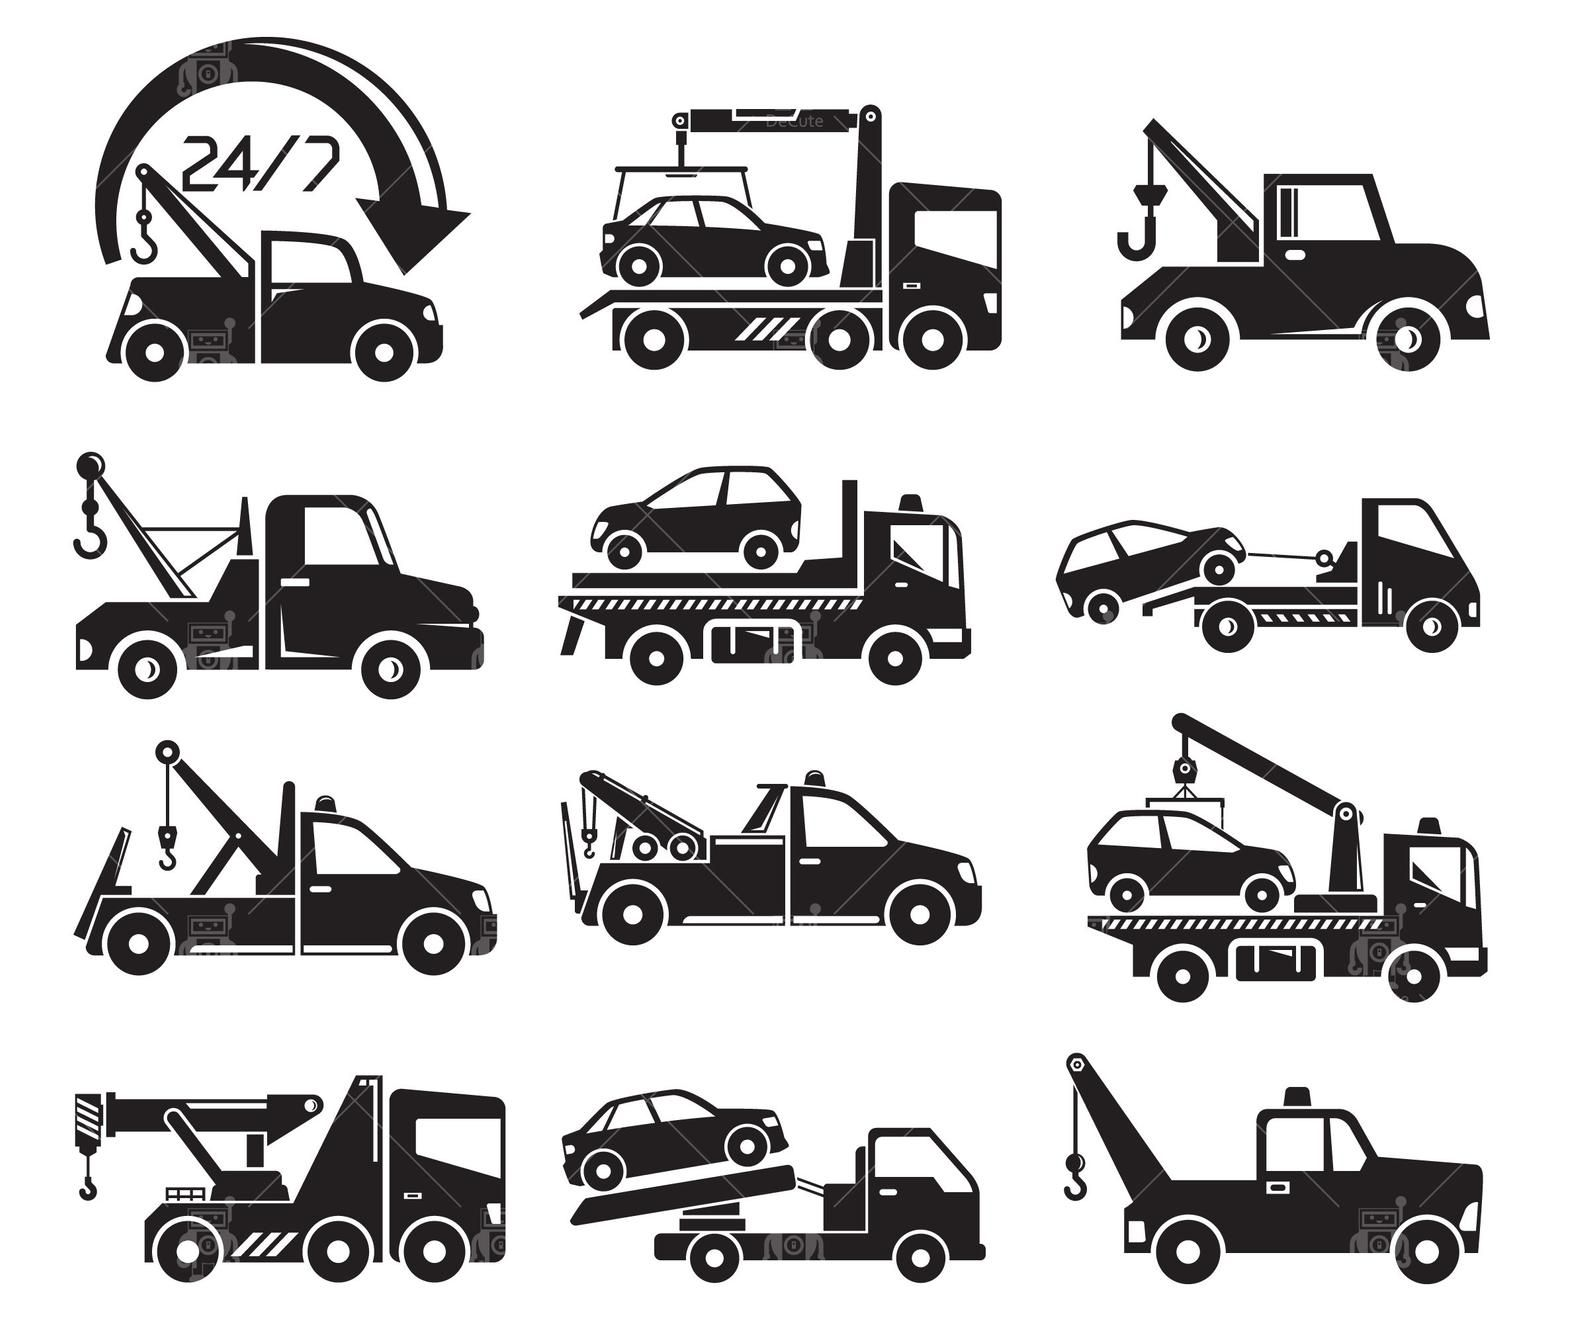 Tow Truck Svg Tow Truck Service Icons Crane Truck Hoist Etsy Tow Truck Truck Cranes Towing